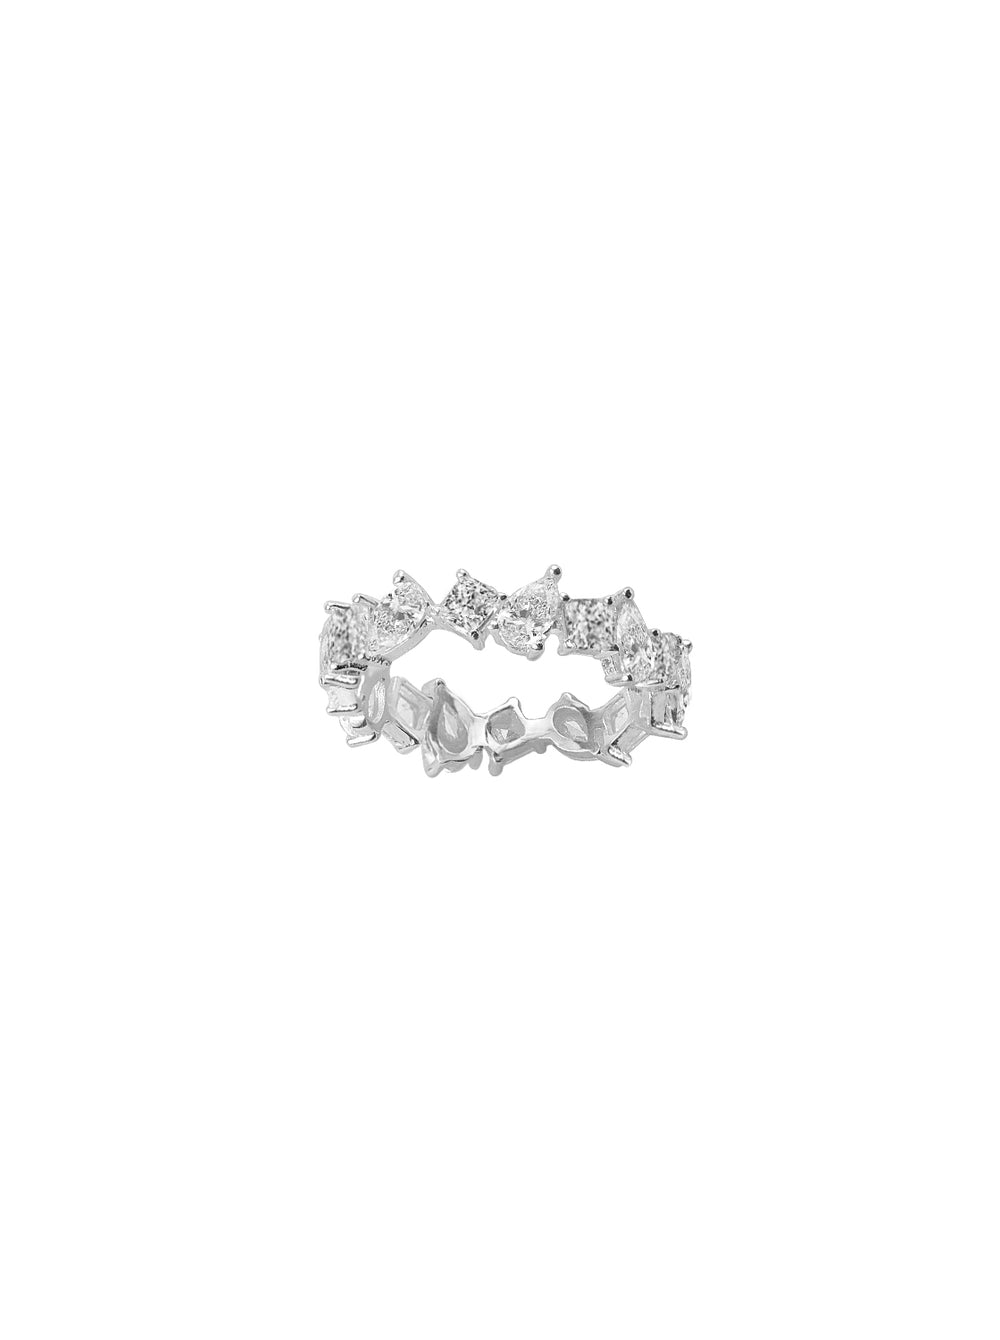 THE MULTI-CUT ETERNITY BAND (CHAPTER II BY GREG YÜNA X THE M JEWELERS)